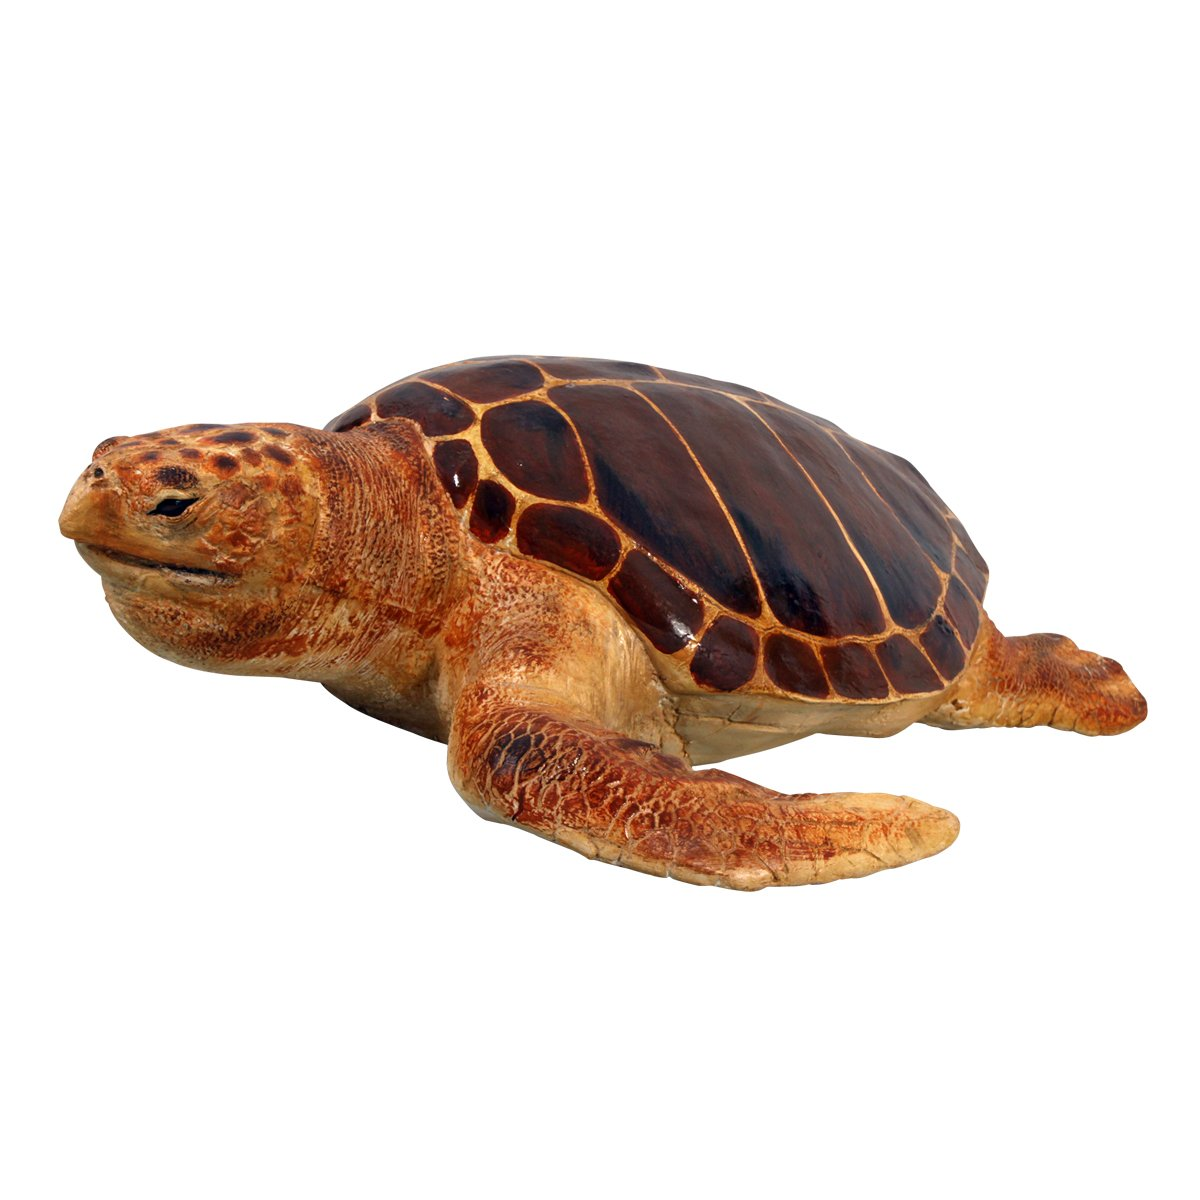 Amazon.com : Design Toscano Giant Loggerhead Sea Turtle Statue : Outdoor  Statues : Garden U0026 Outdoor